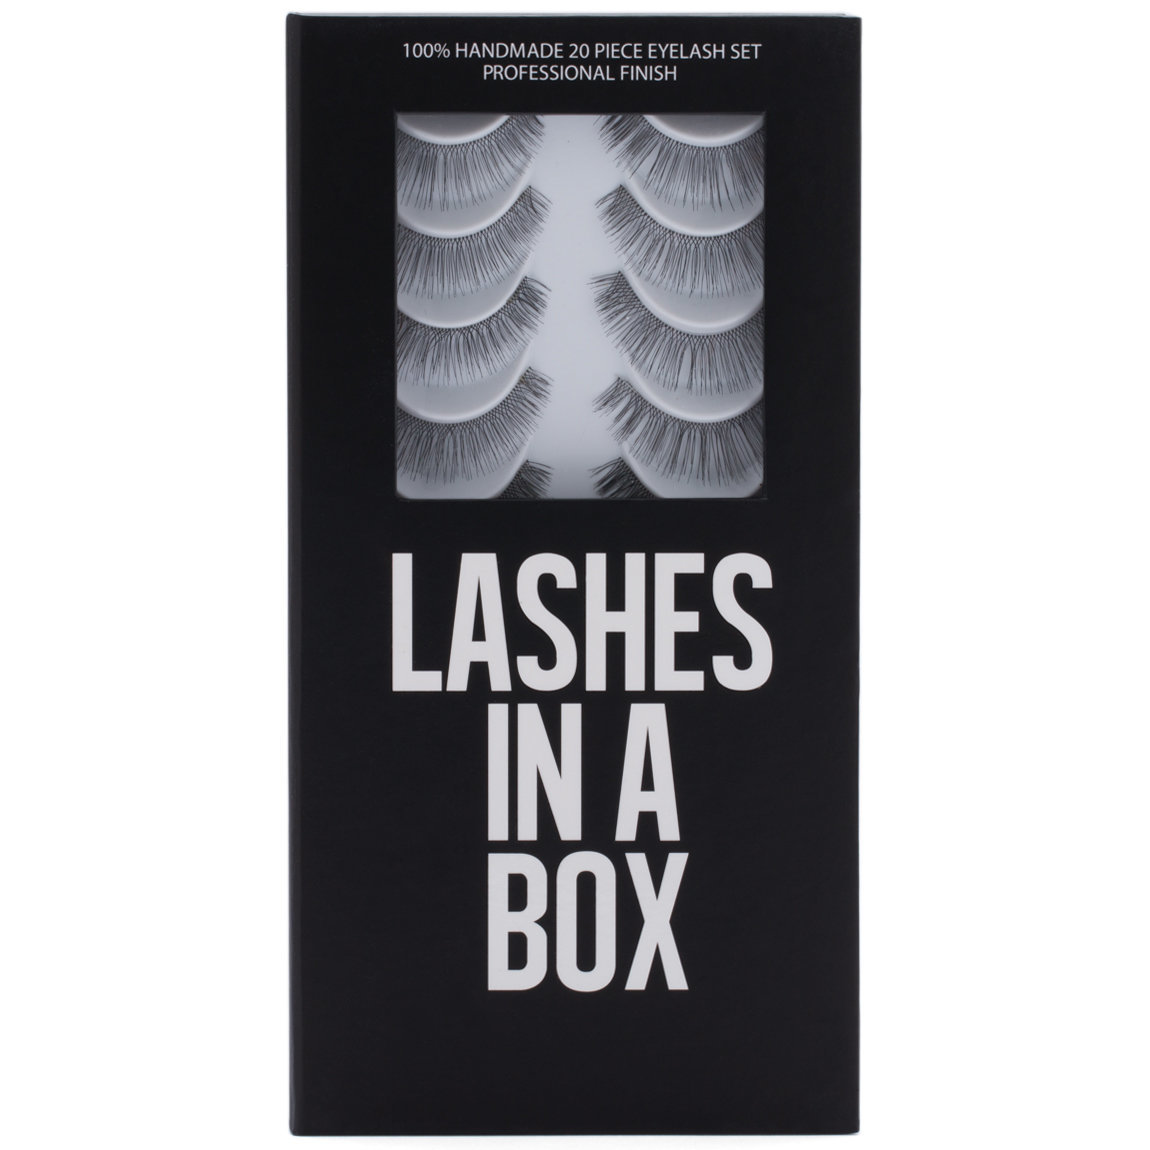 LASHES IN A BOX N°5 product swatch.